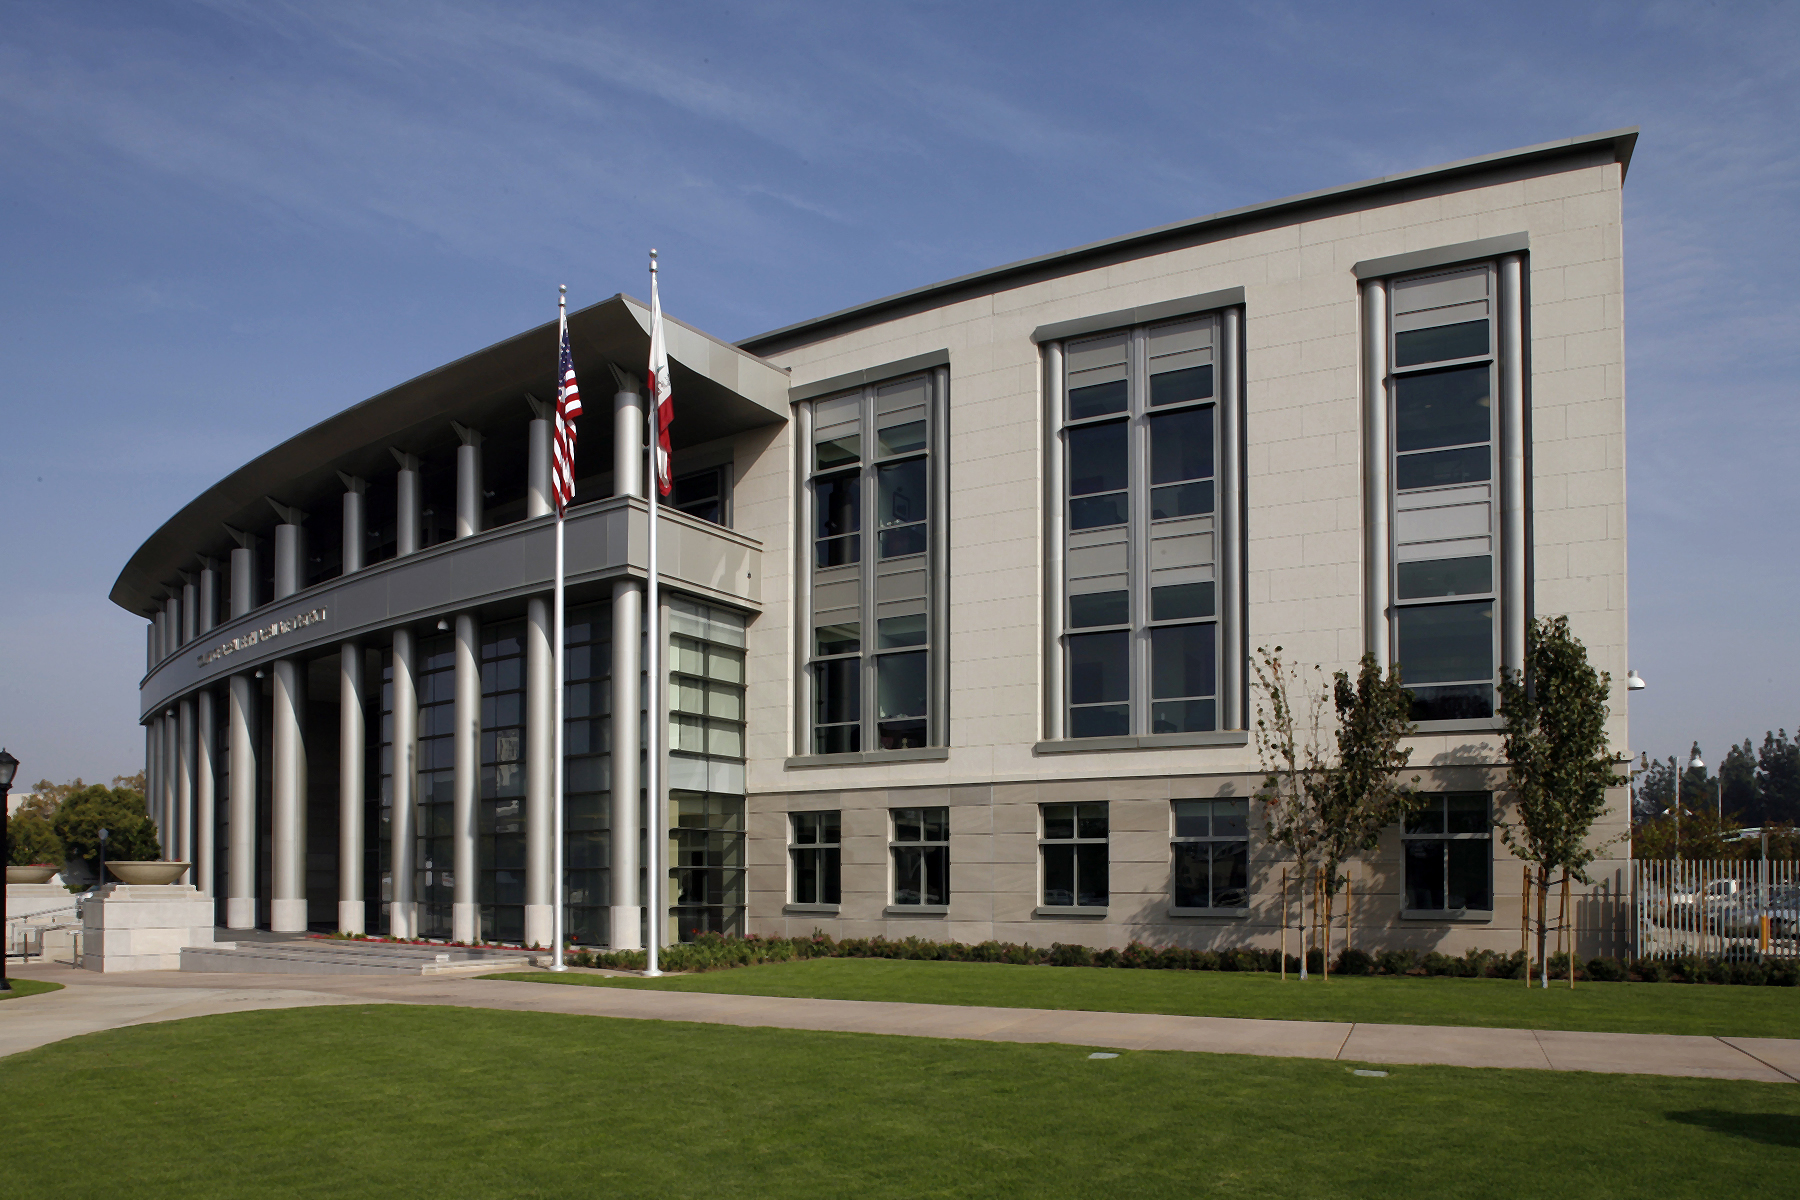 Fifth District Court of Appeal, Fresno